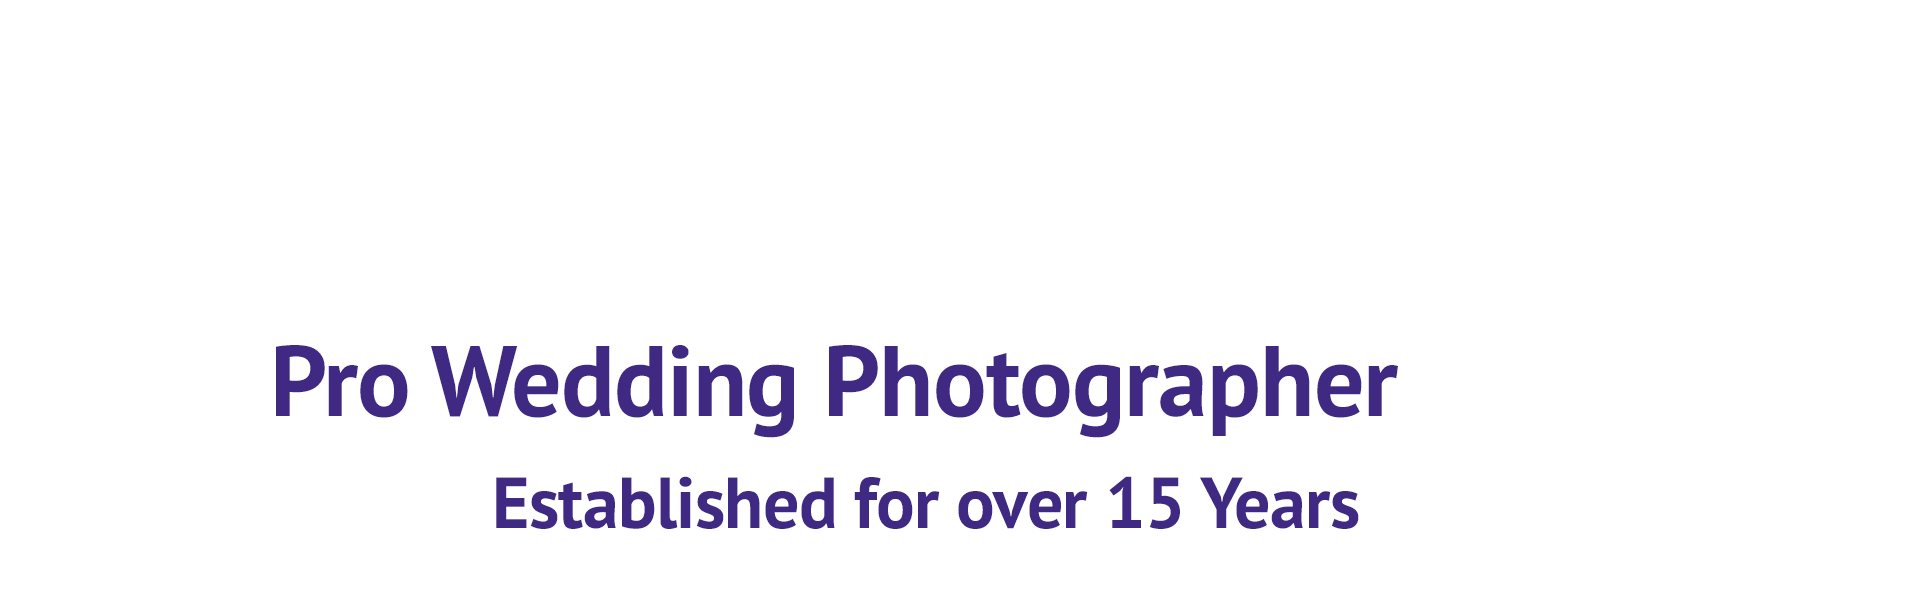 Pro Wedding Photographer Established for over 15 Years